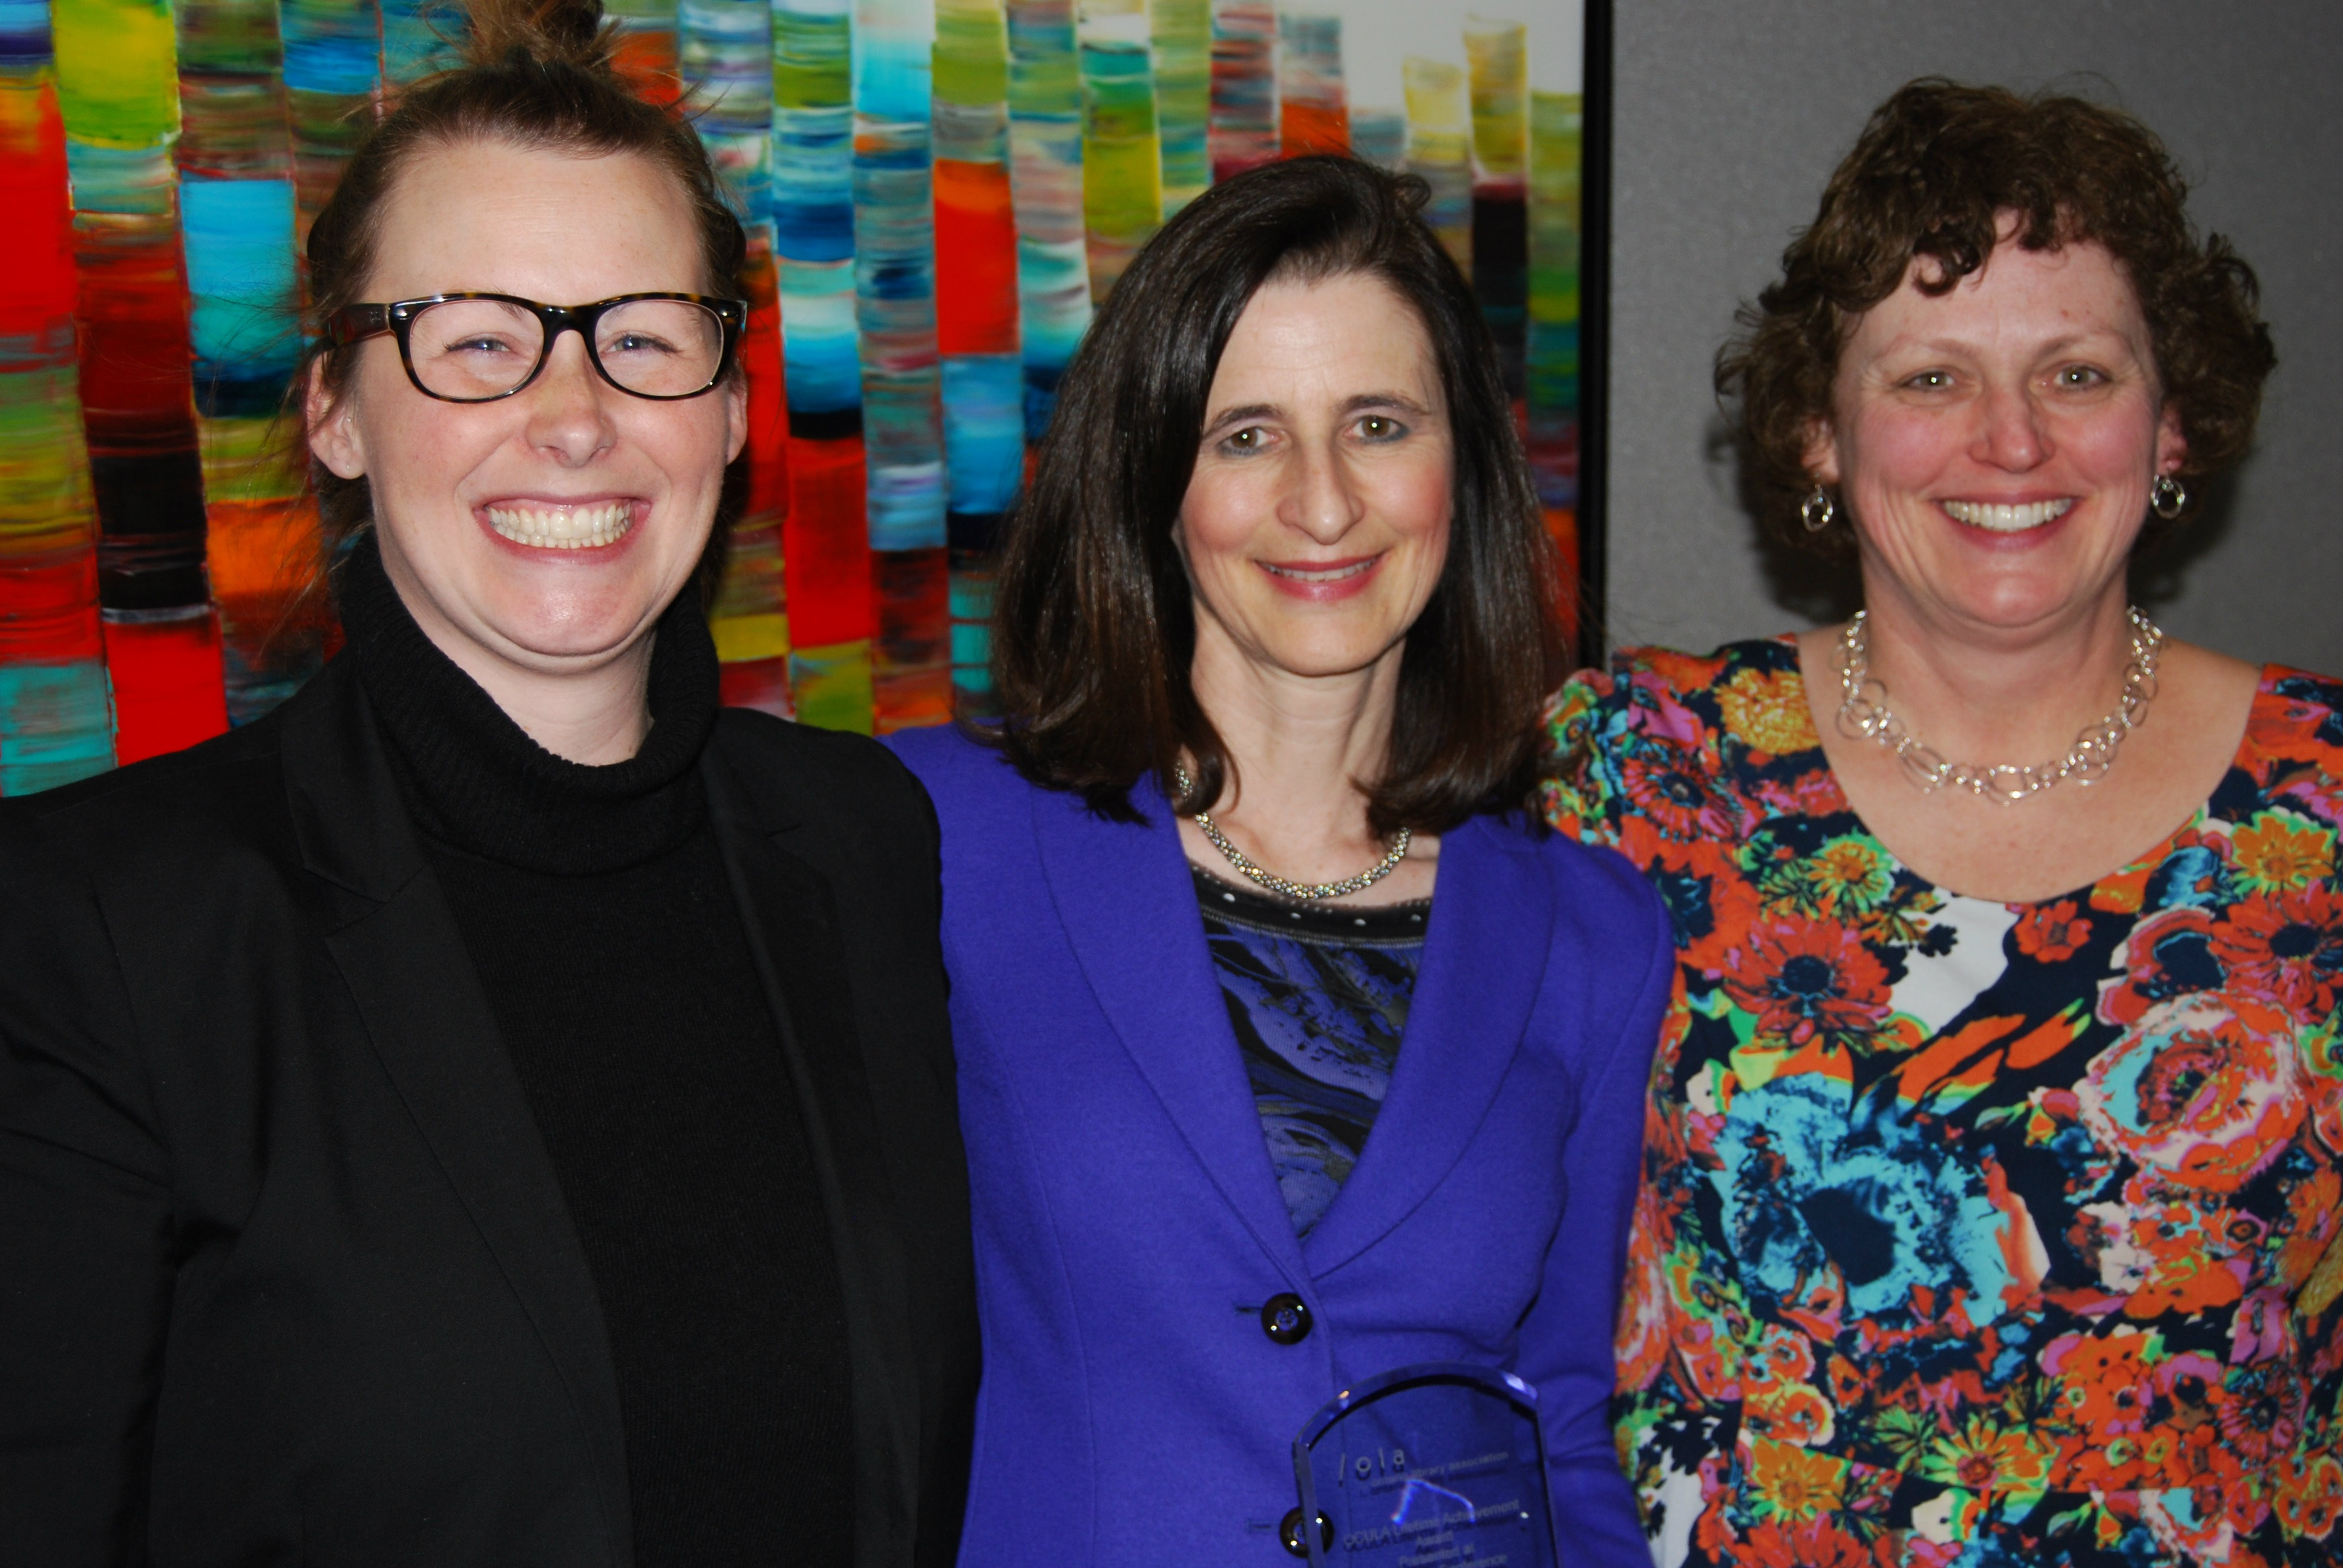 Mary Ann Mavrinac (centre), OCULA's 2014 Lifetime Achievement Award winner, along with nominators Kim Stymest (left) and Lorna E. Rourke (right) at the 2014 OCULA AGM.